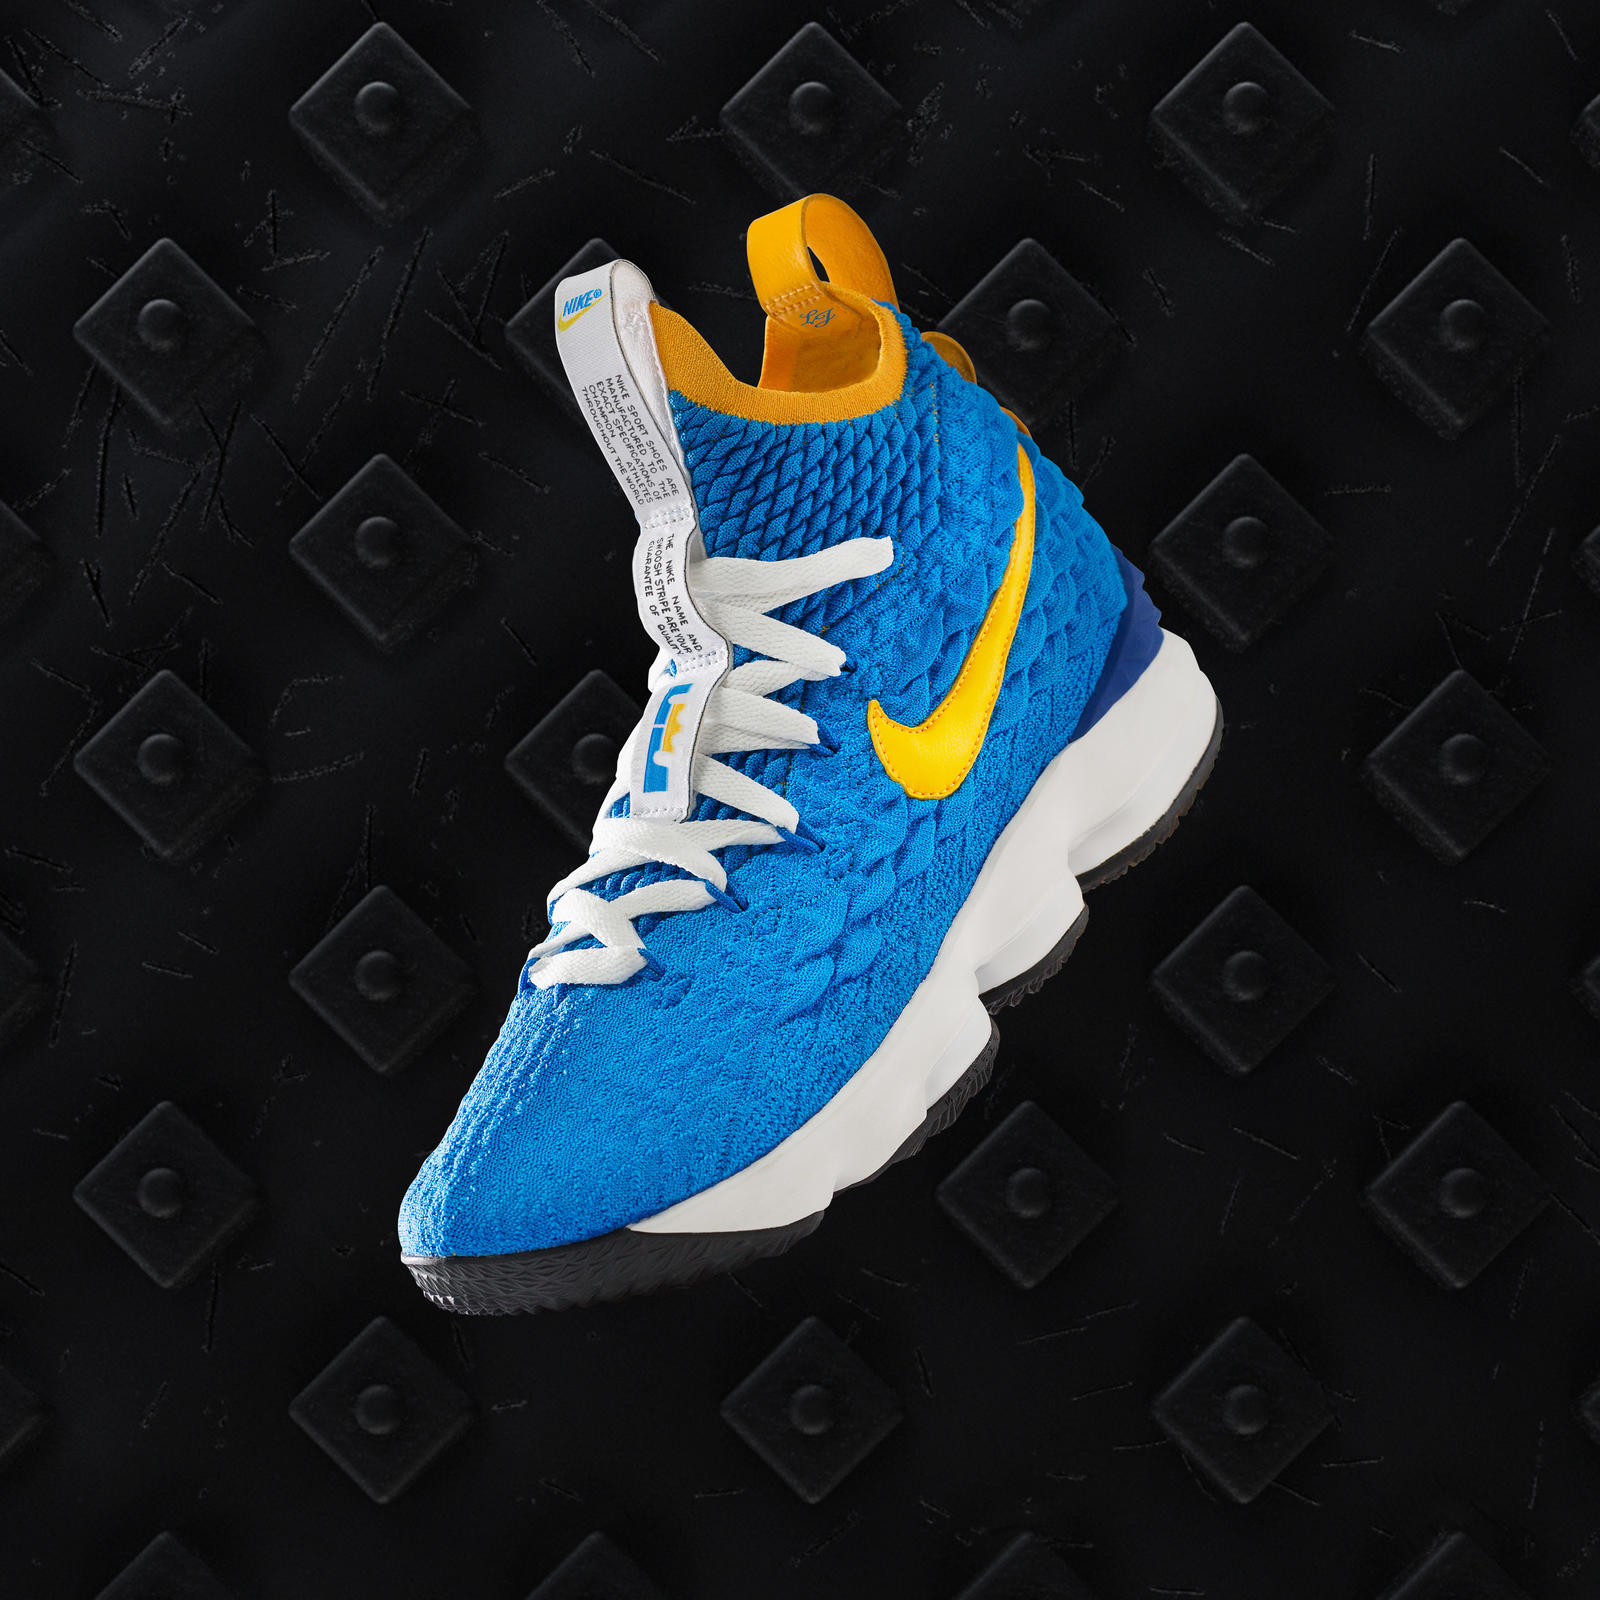 low cost 0c9bc 9b334 LeBron 15 inspired by the Nike Waffle Trainer